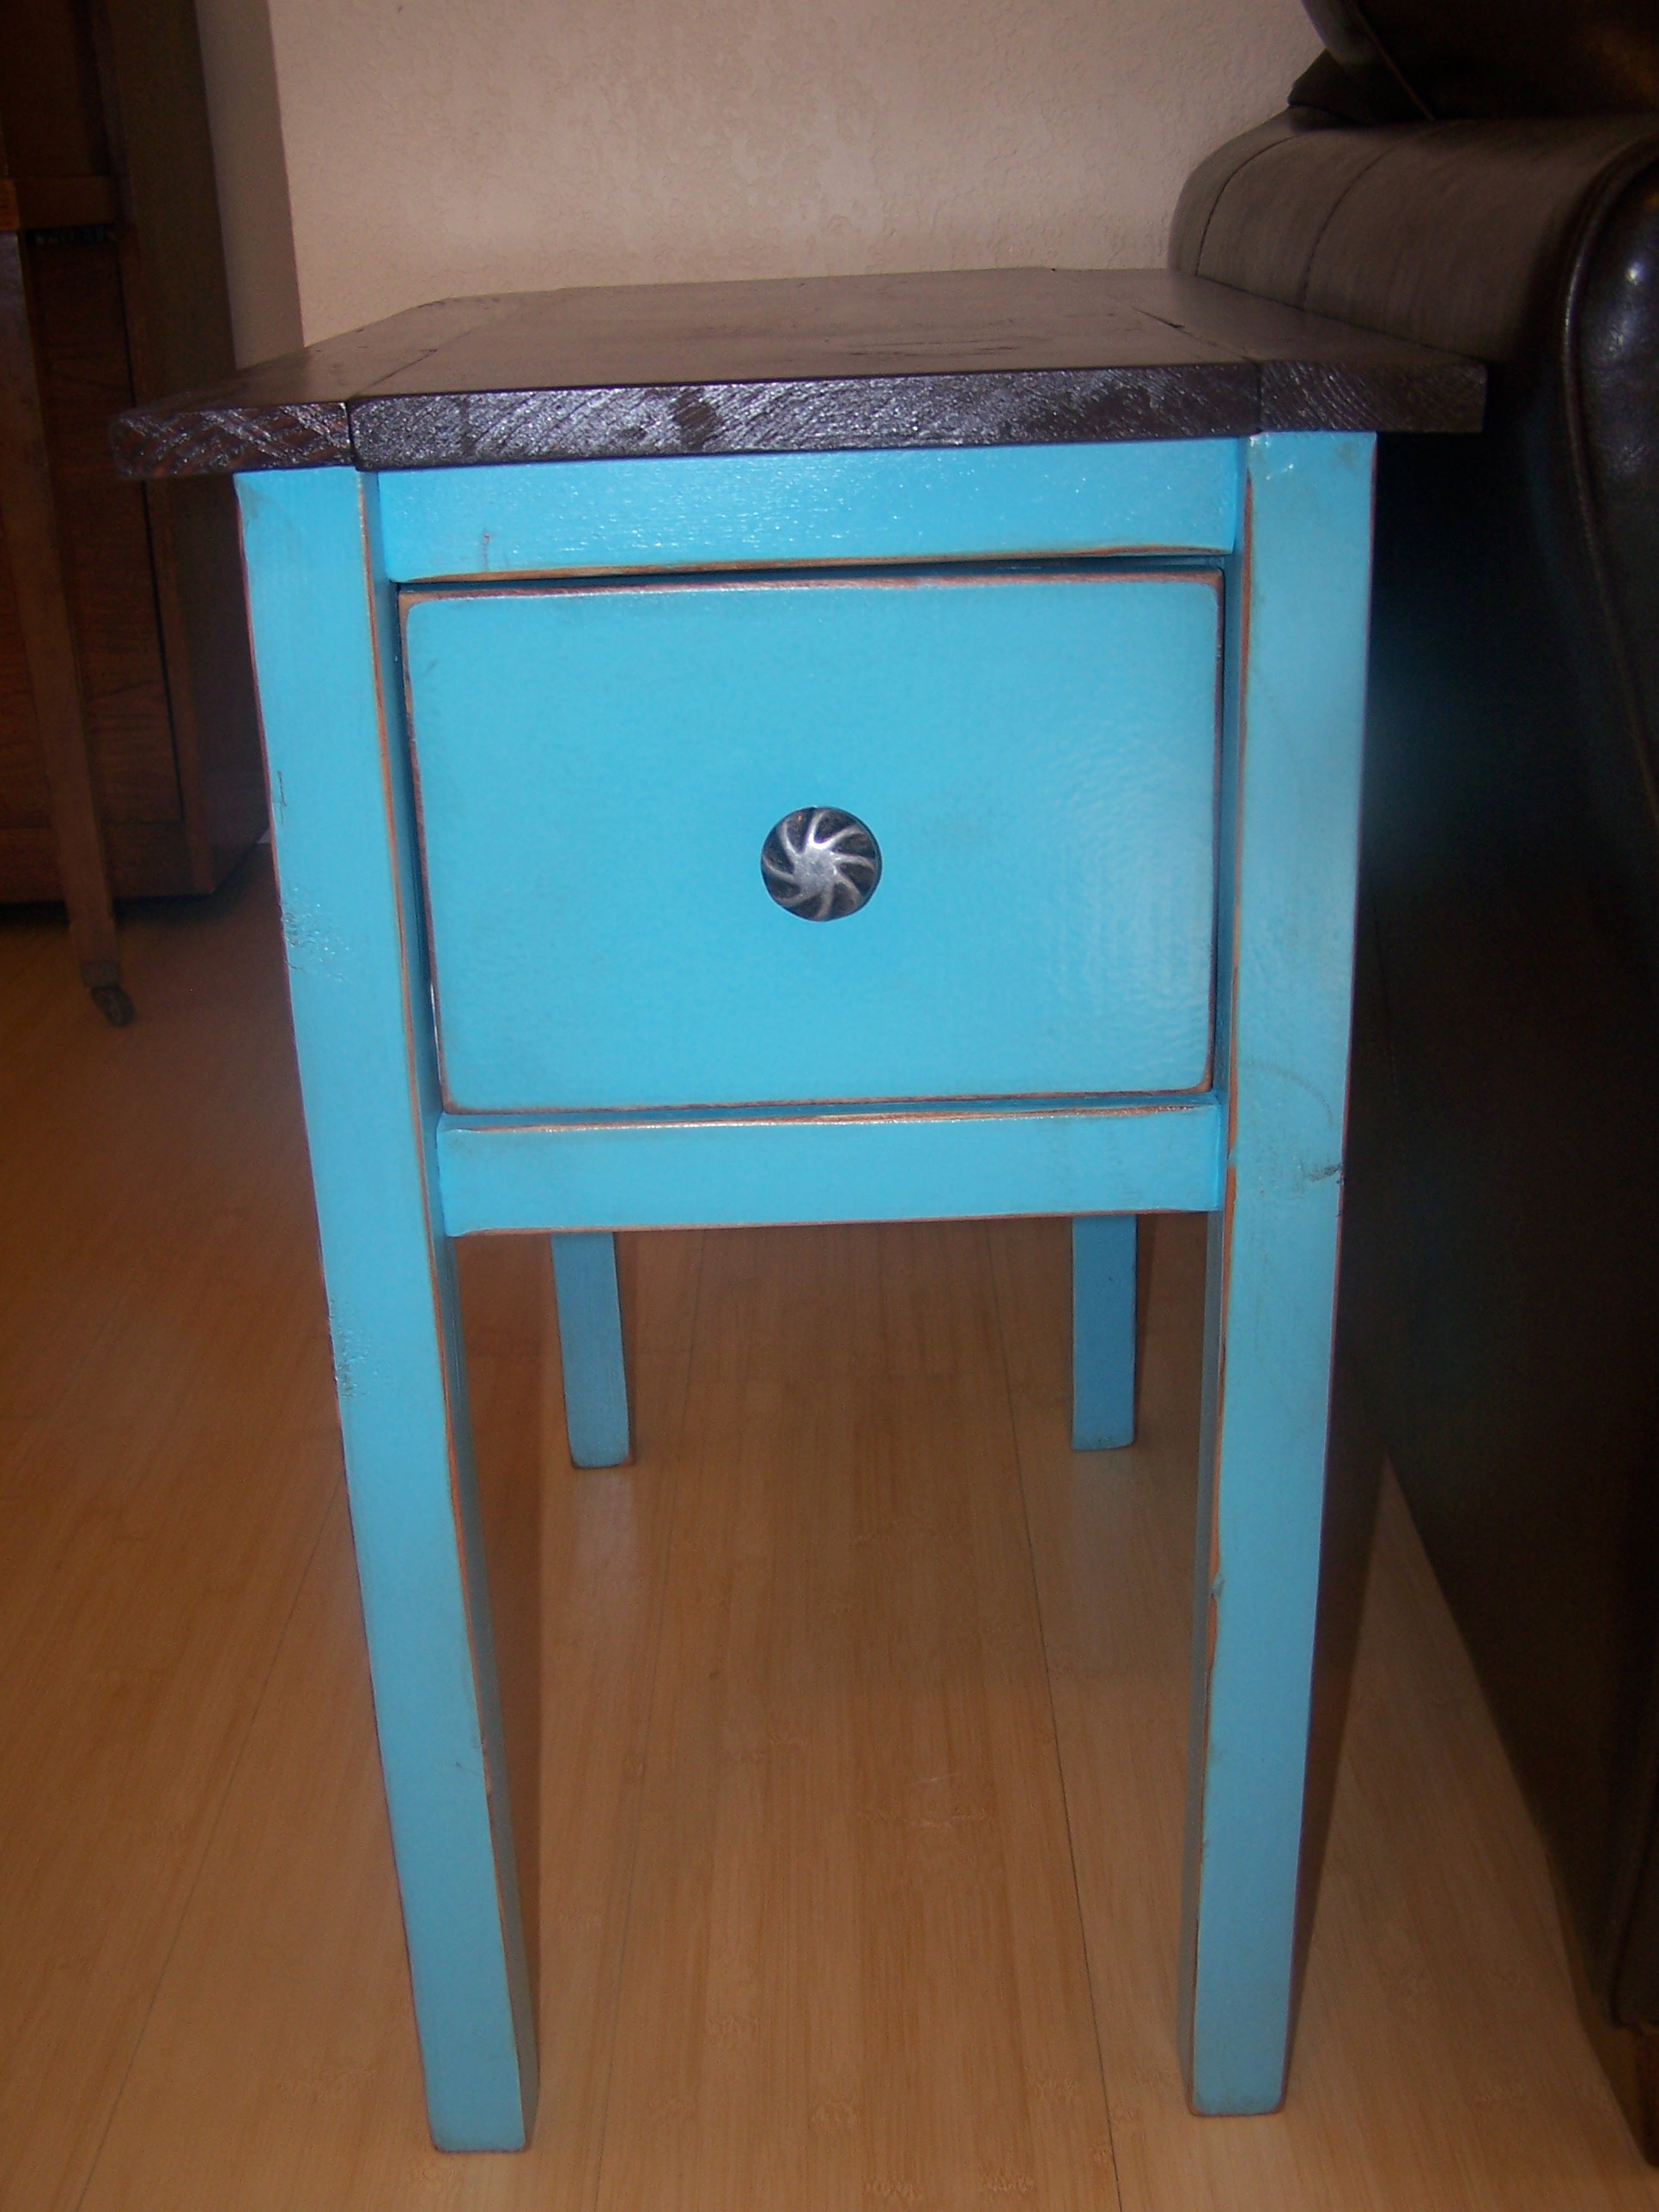 ana white narrow cottage end tables diy projects teal blue table glass target dining room chairs kijiji inexpensive patio ethan wood plank mercury row console large runner ikea